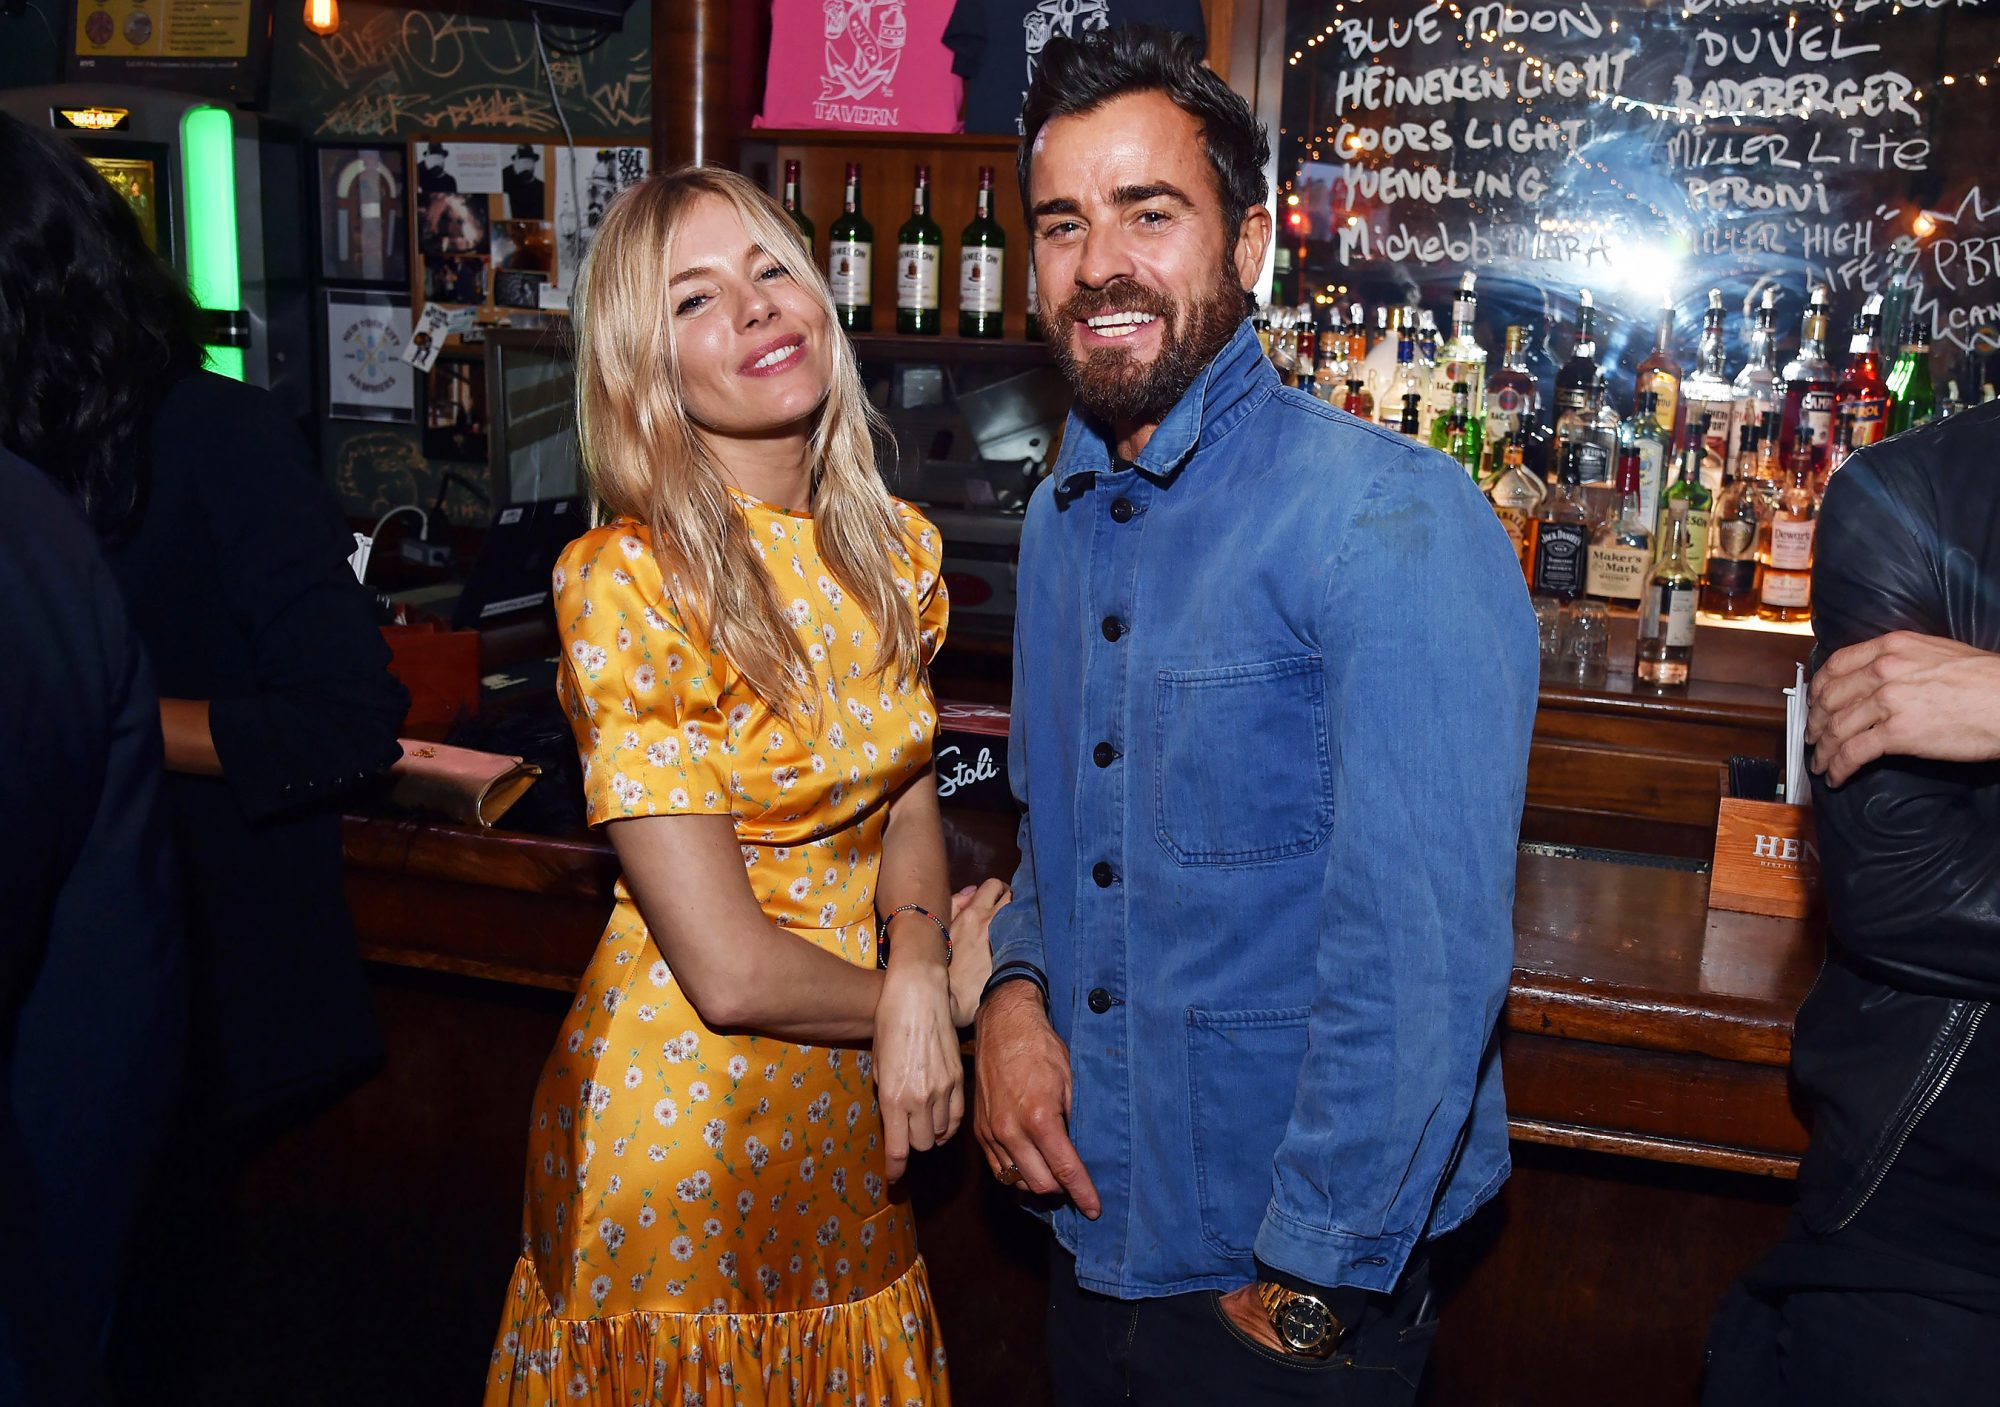 'A Quiet Place' film premiere, After Party, New York, USA - 02 Apr 2018